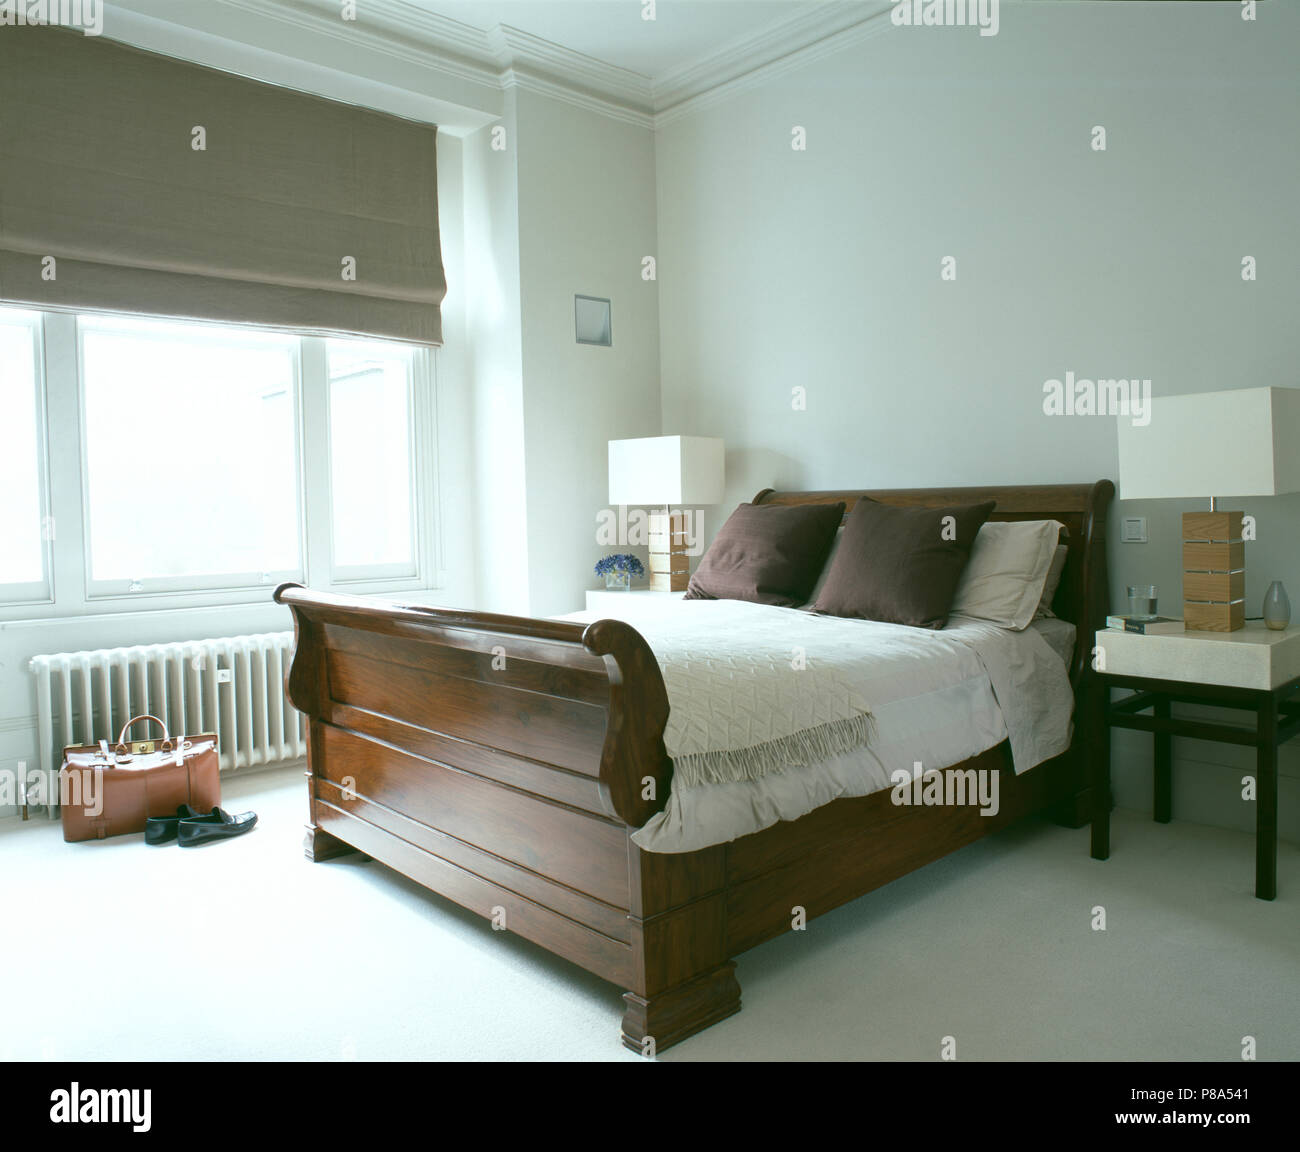 Lamps With Rectangular Shades On Tables Either Side Of Mahogany Sleigh Bed In Modern White Bedroom Stock Photo Alamy